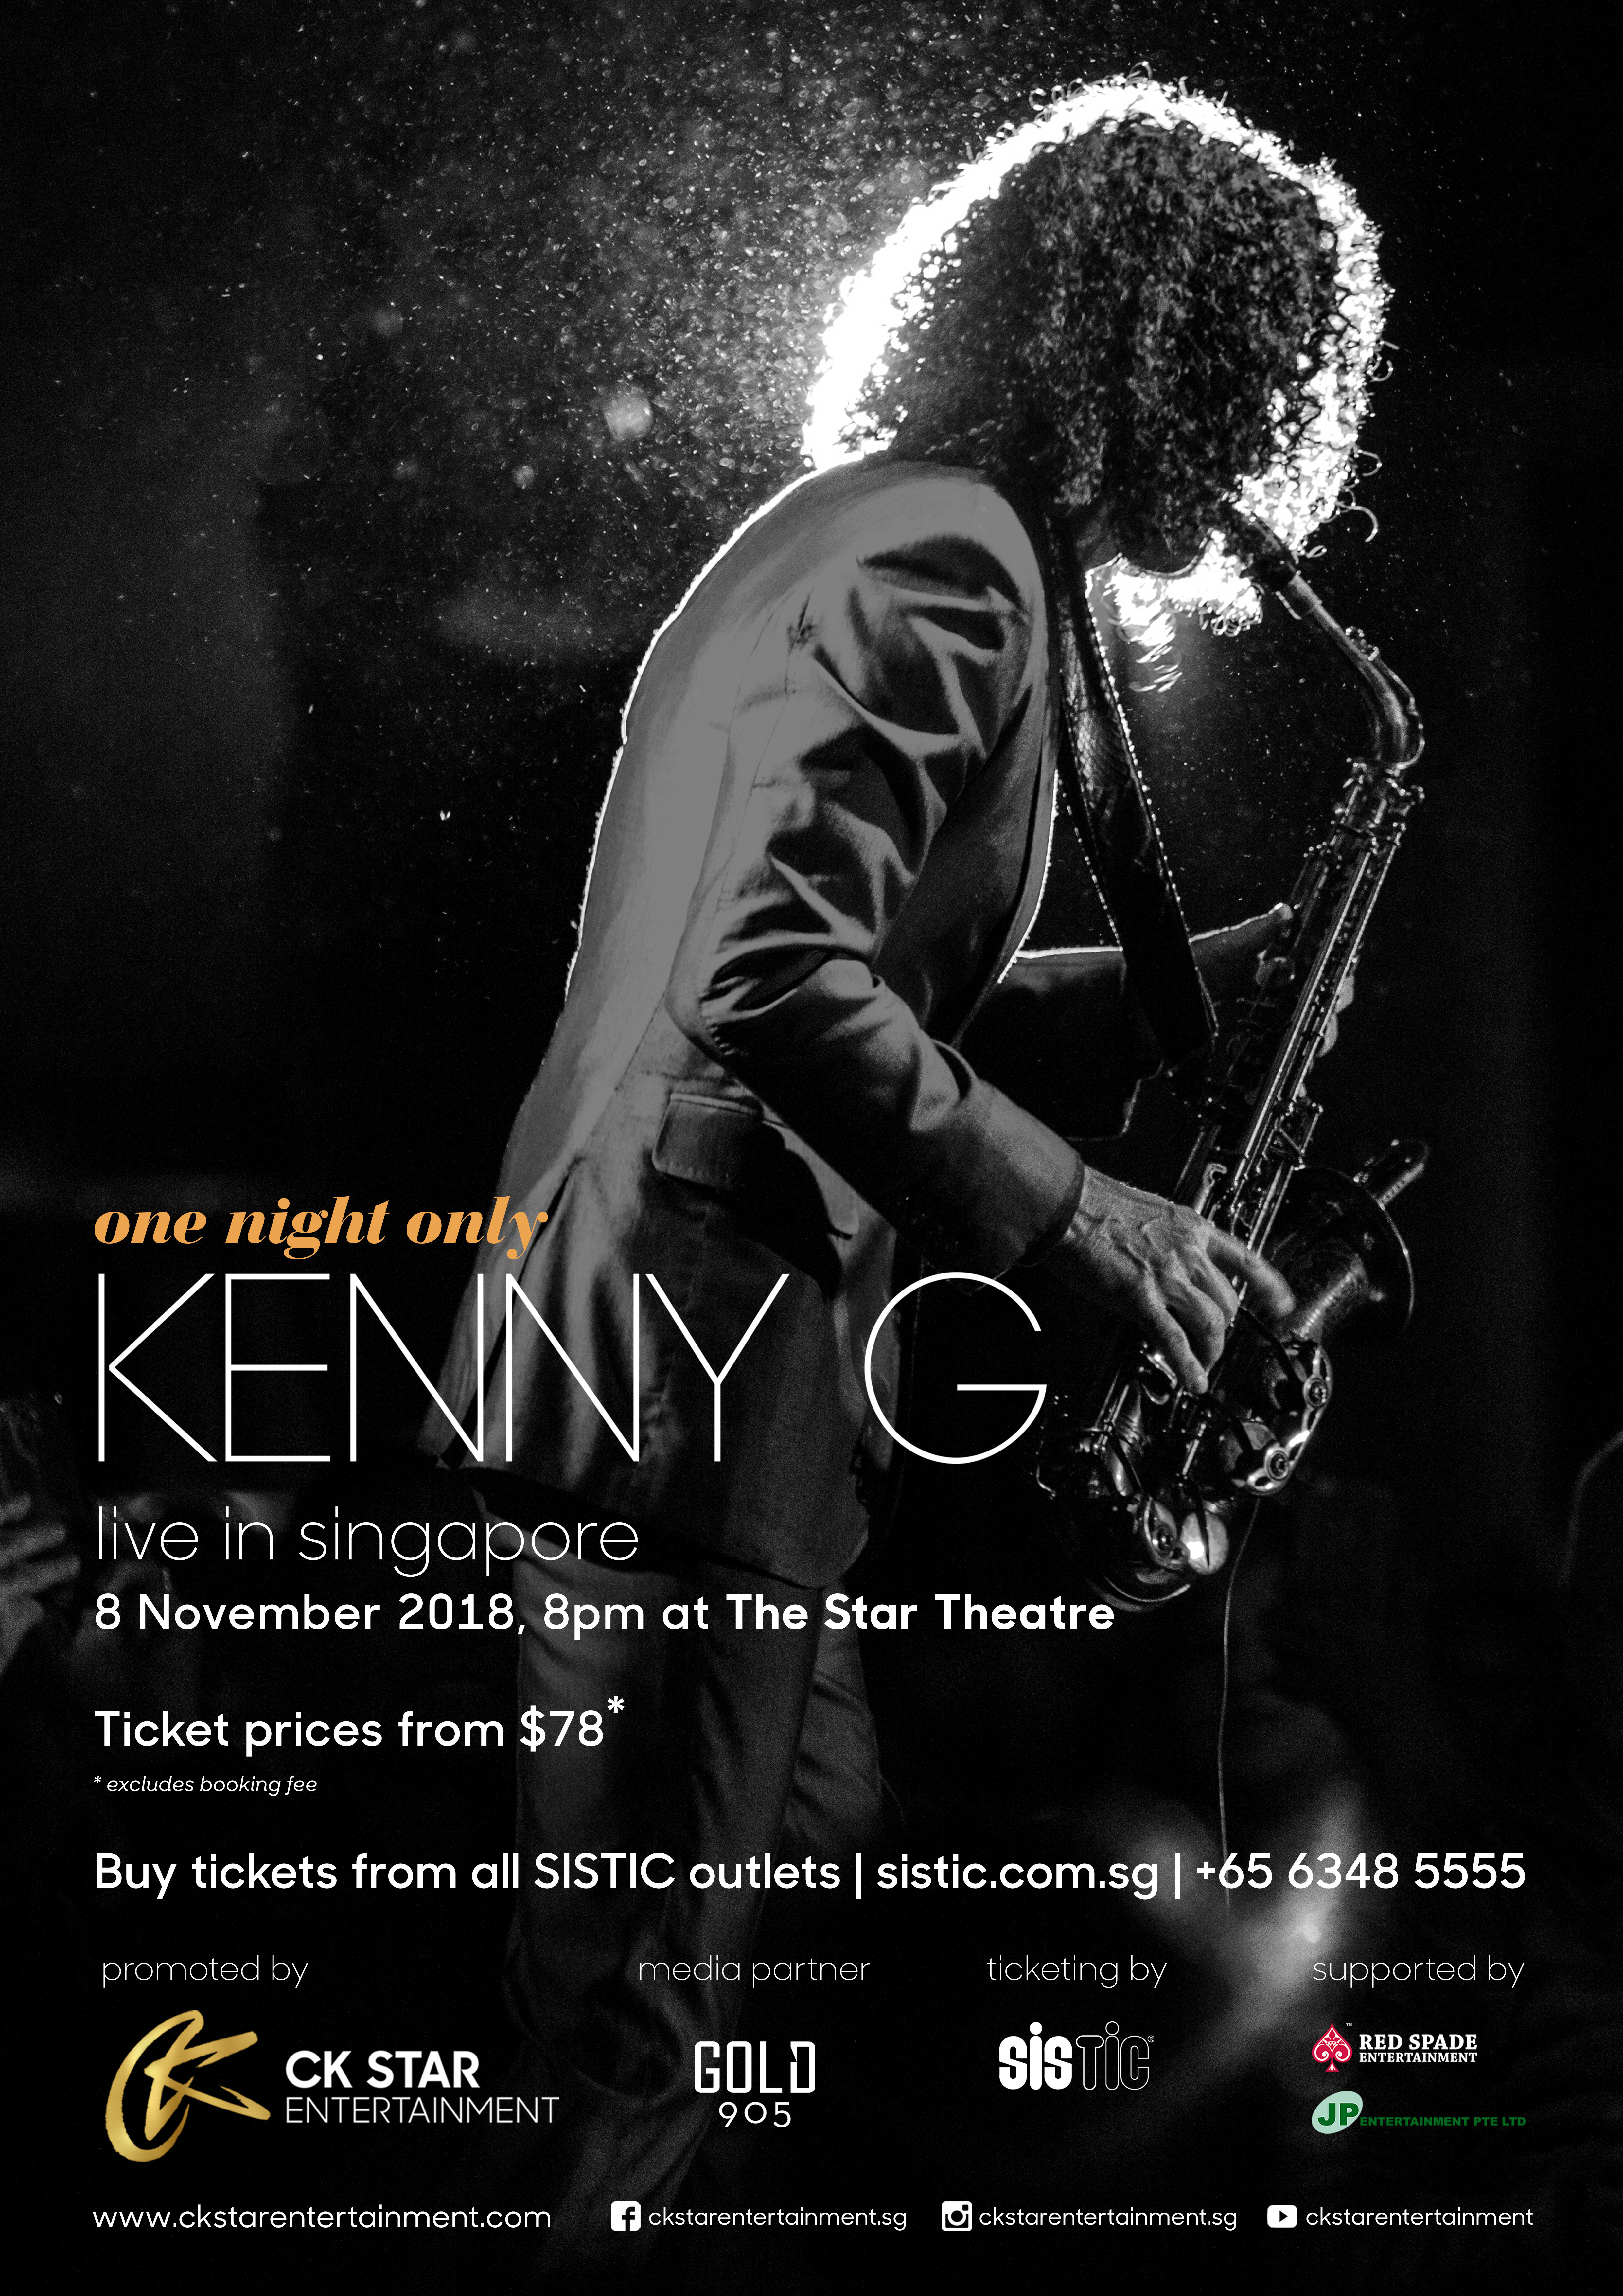 /public/file/article/Kenny%20G%20One%20Night%20Only%20in%20Singapore%20(2).jpg